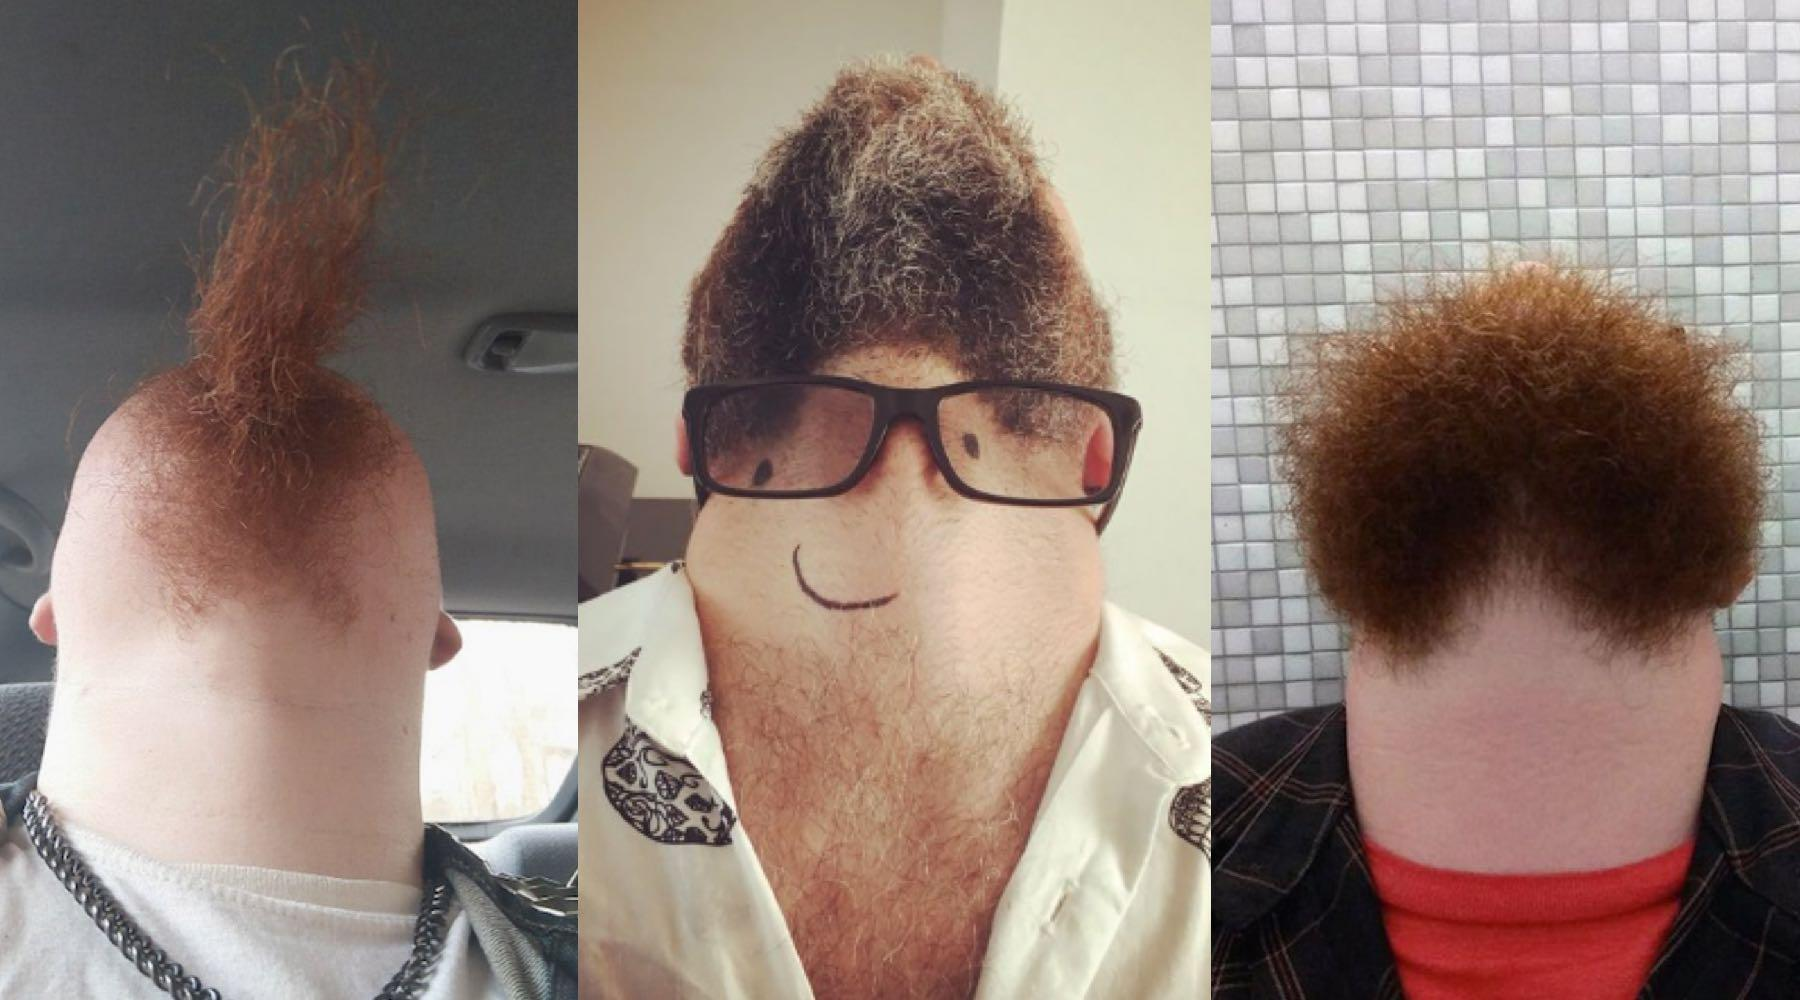 Photographing Men With Beards From Underneath Is The Latest Trend